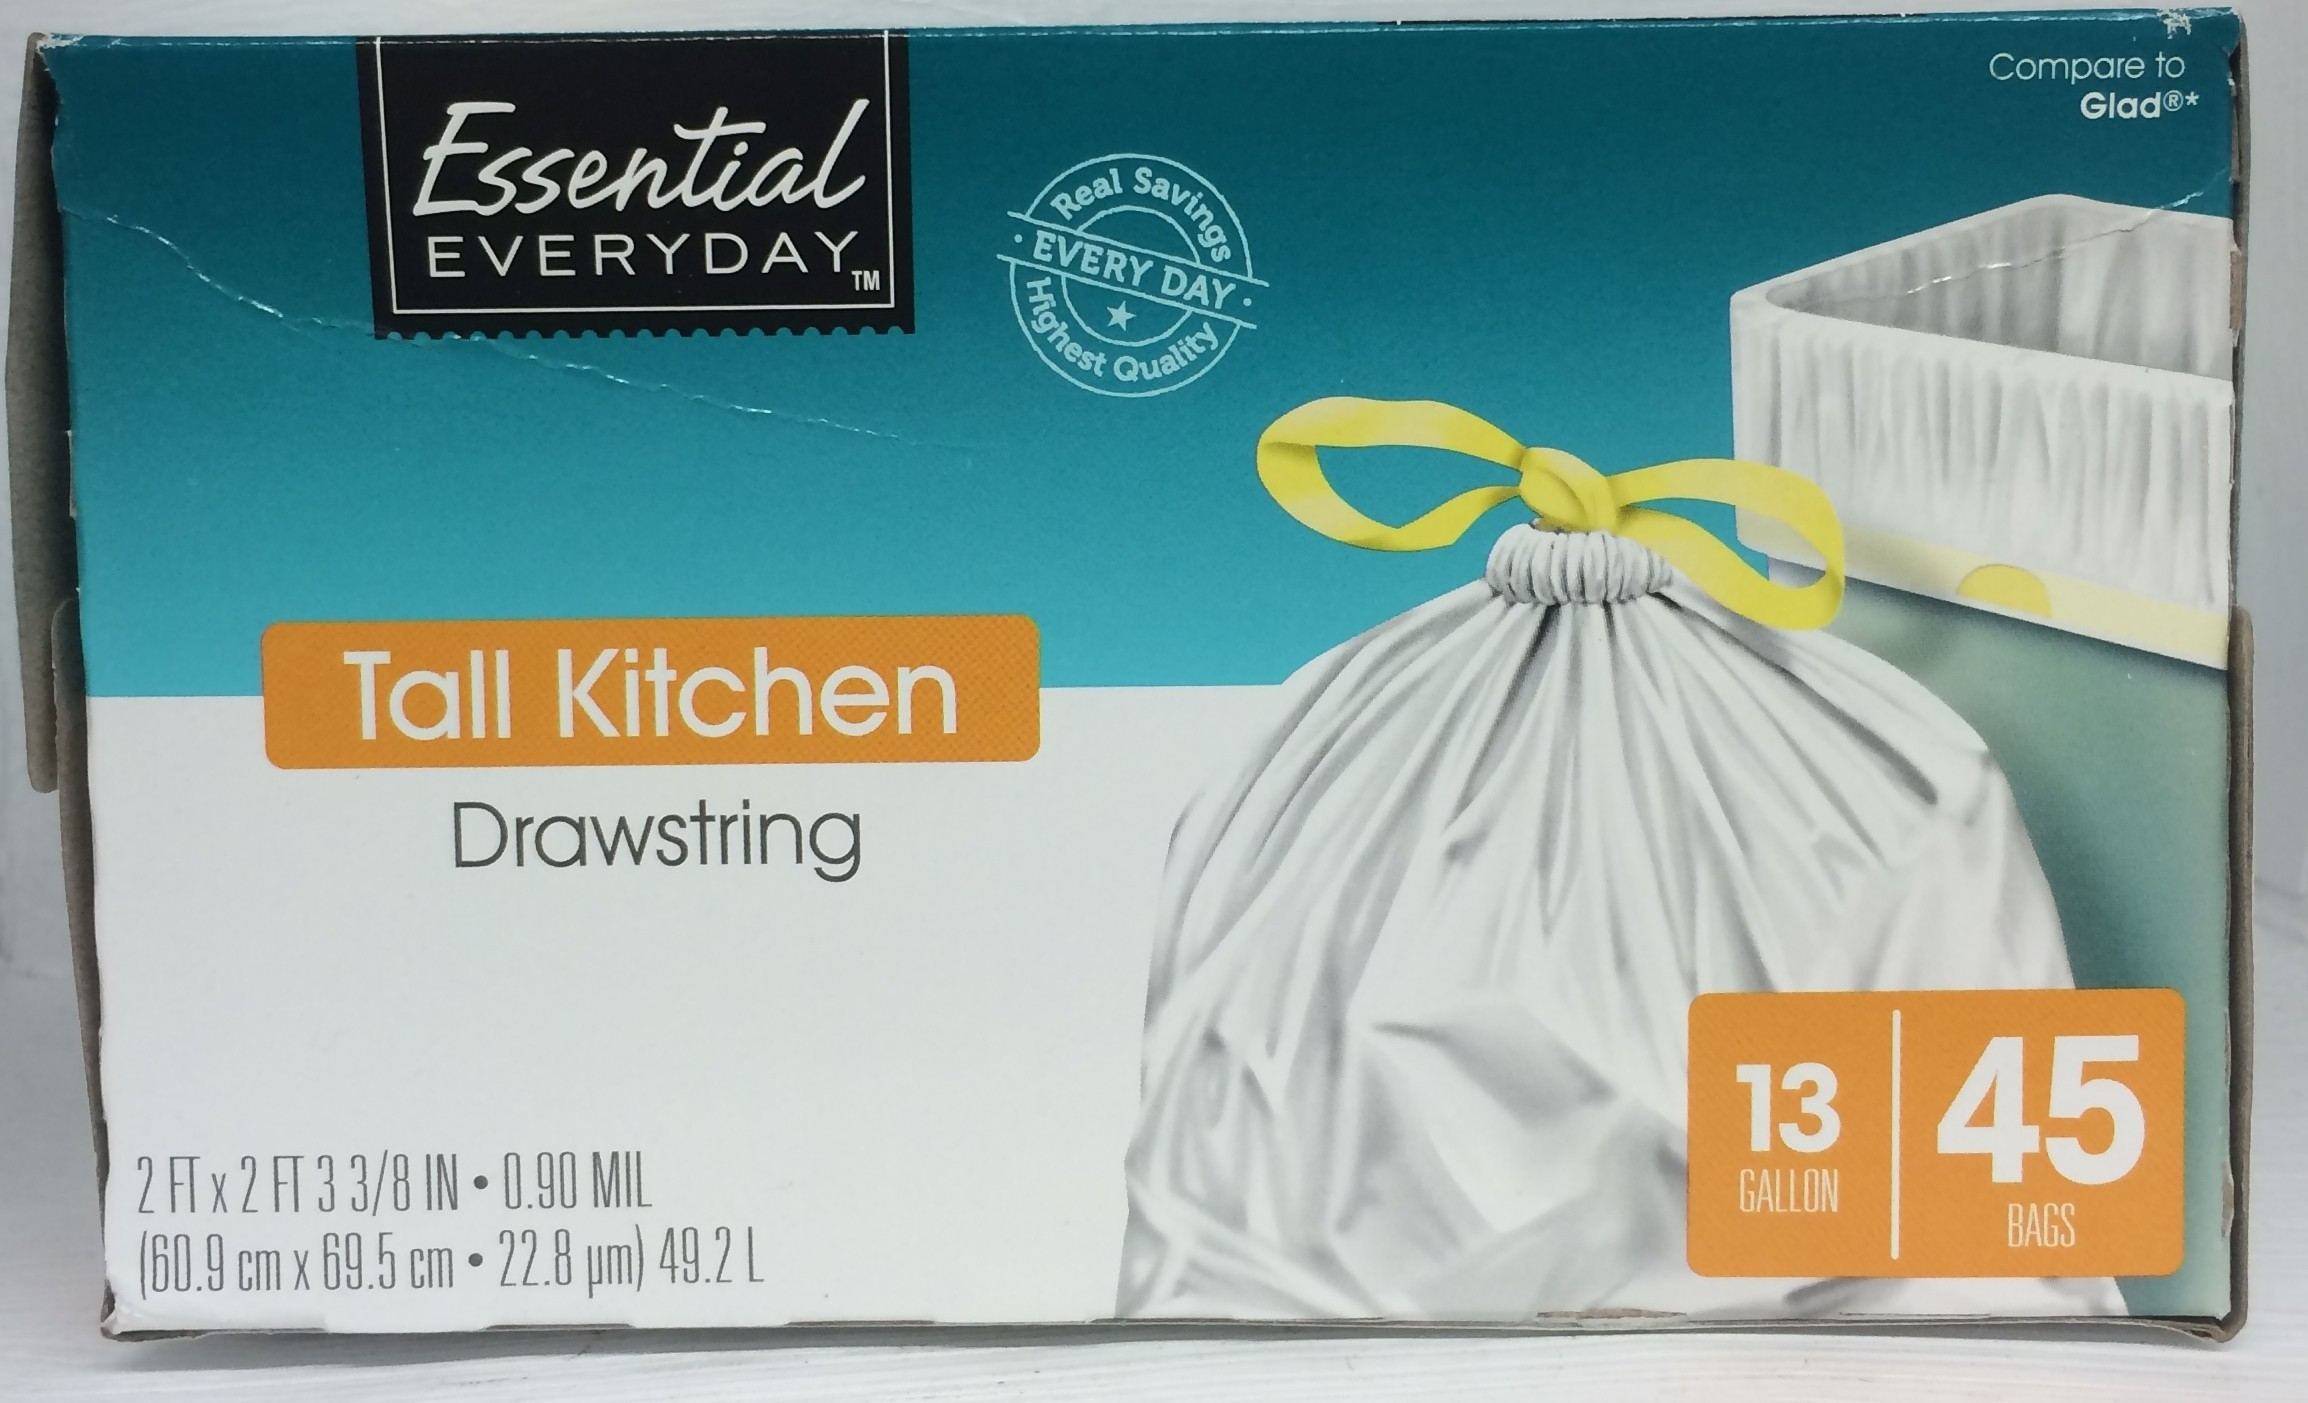 Essential Everyday Tall Kitchen Bags - Drawstring - 13 GAL / 40 CT ...